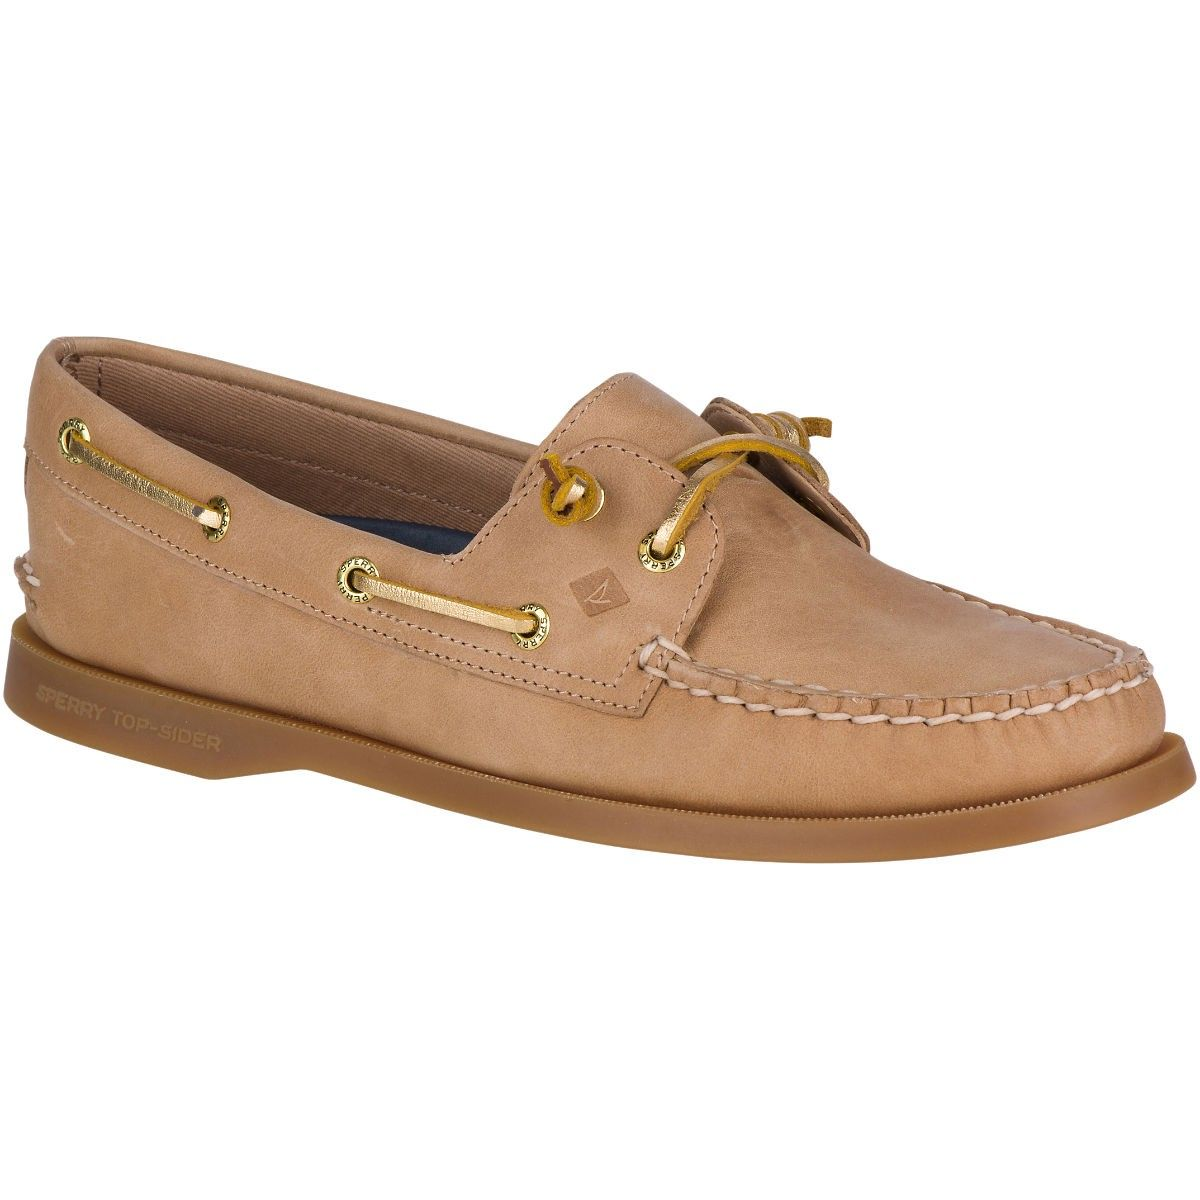 Official Sperry Site - Shop the latest collection of boat shoes for women  from Sperry. Discover womens deck shoes, leather and canvas boat shoes for  women